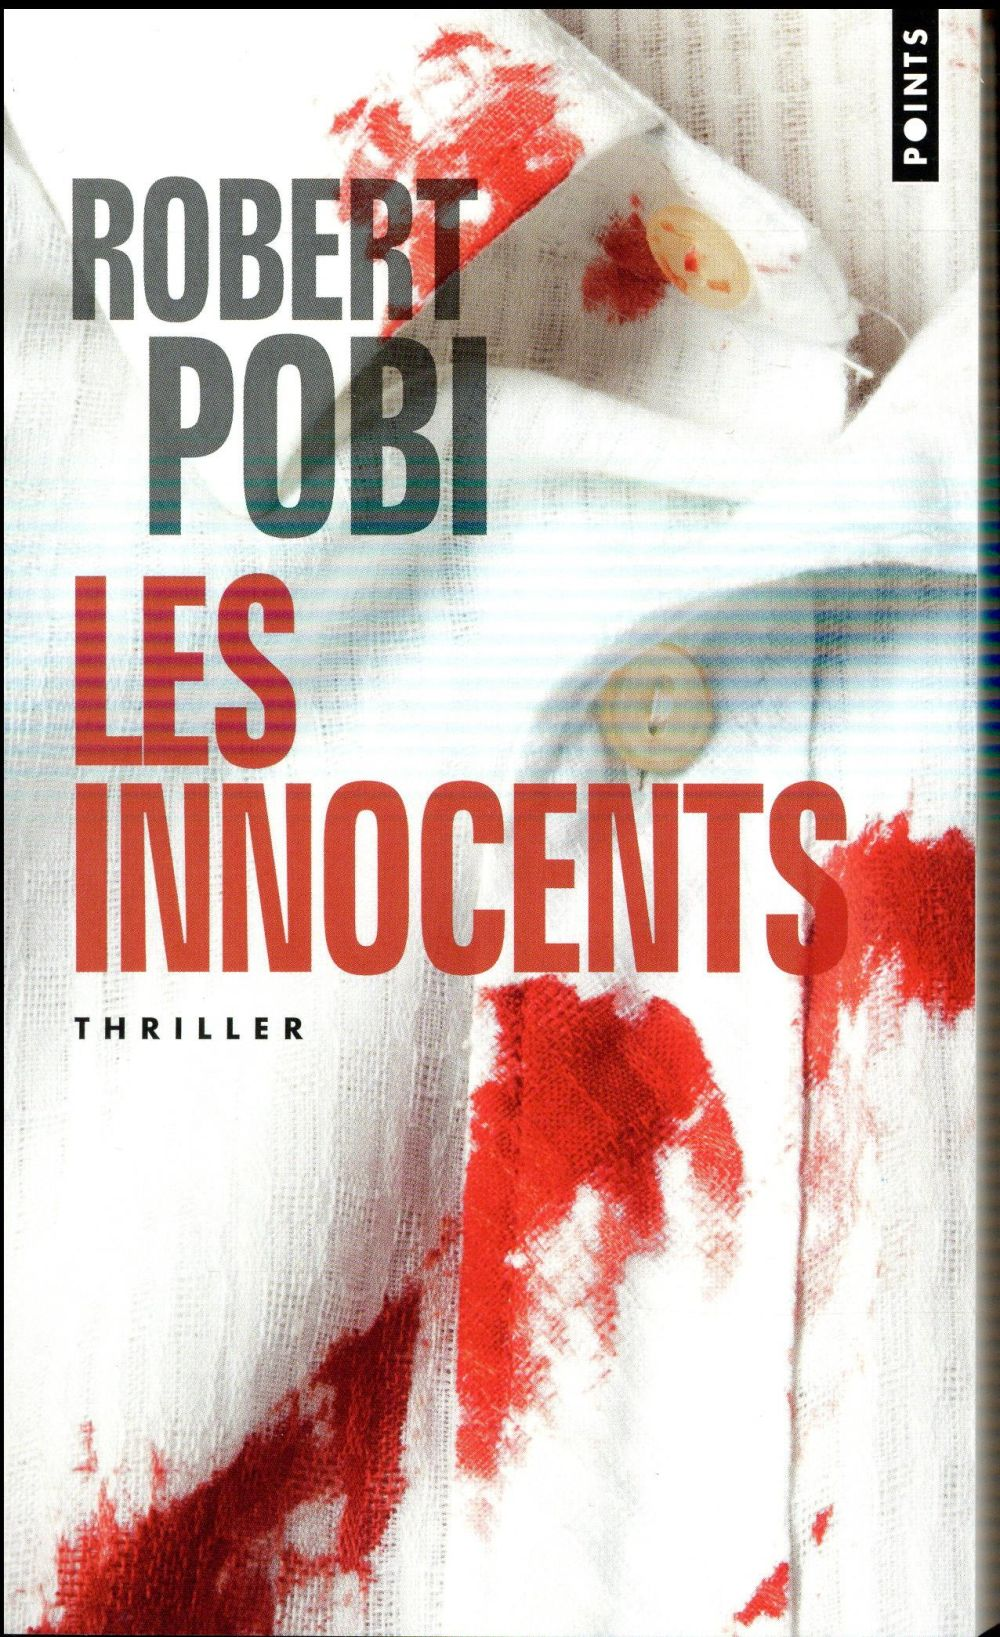 Pobi Robert - LES INNOCENTS